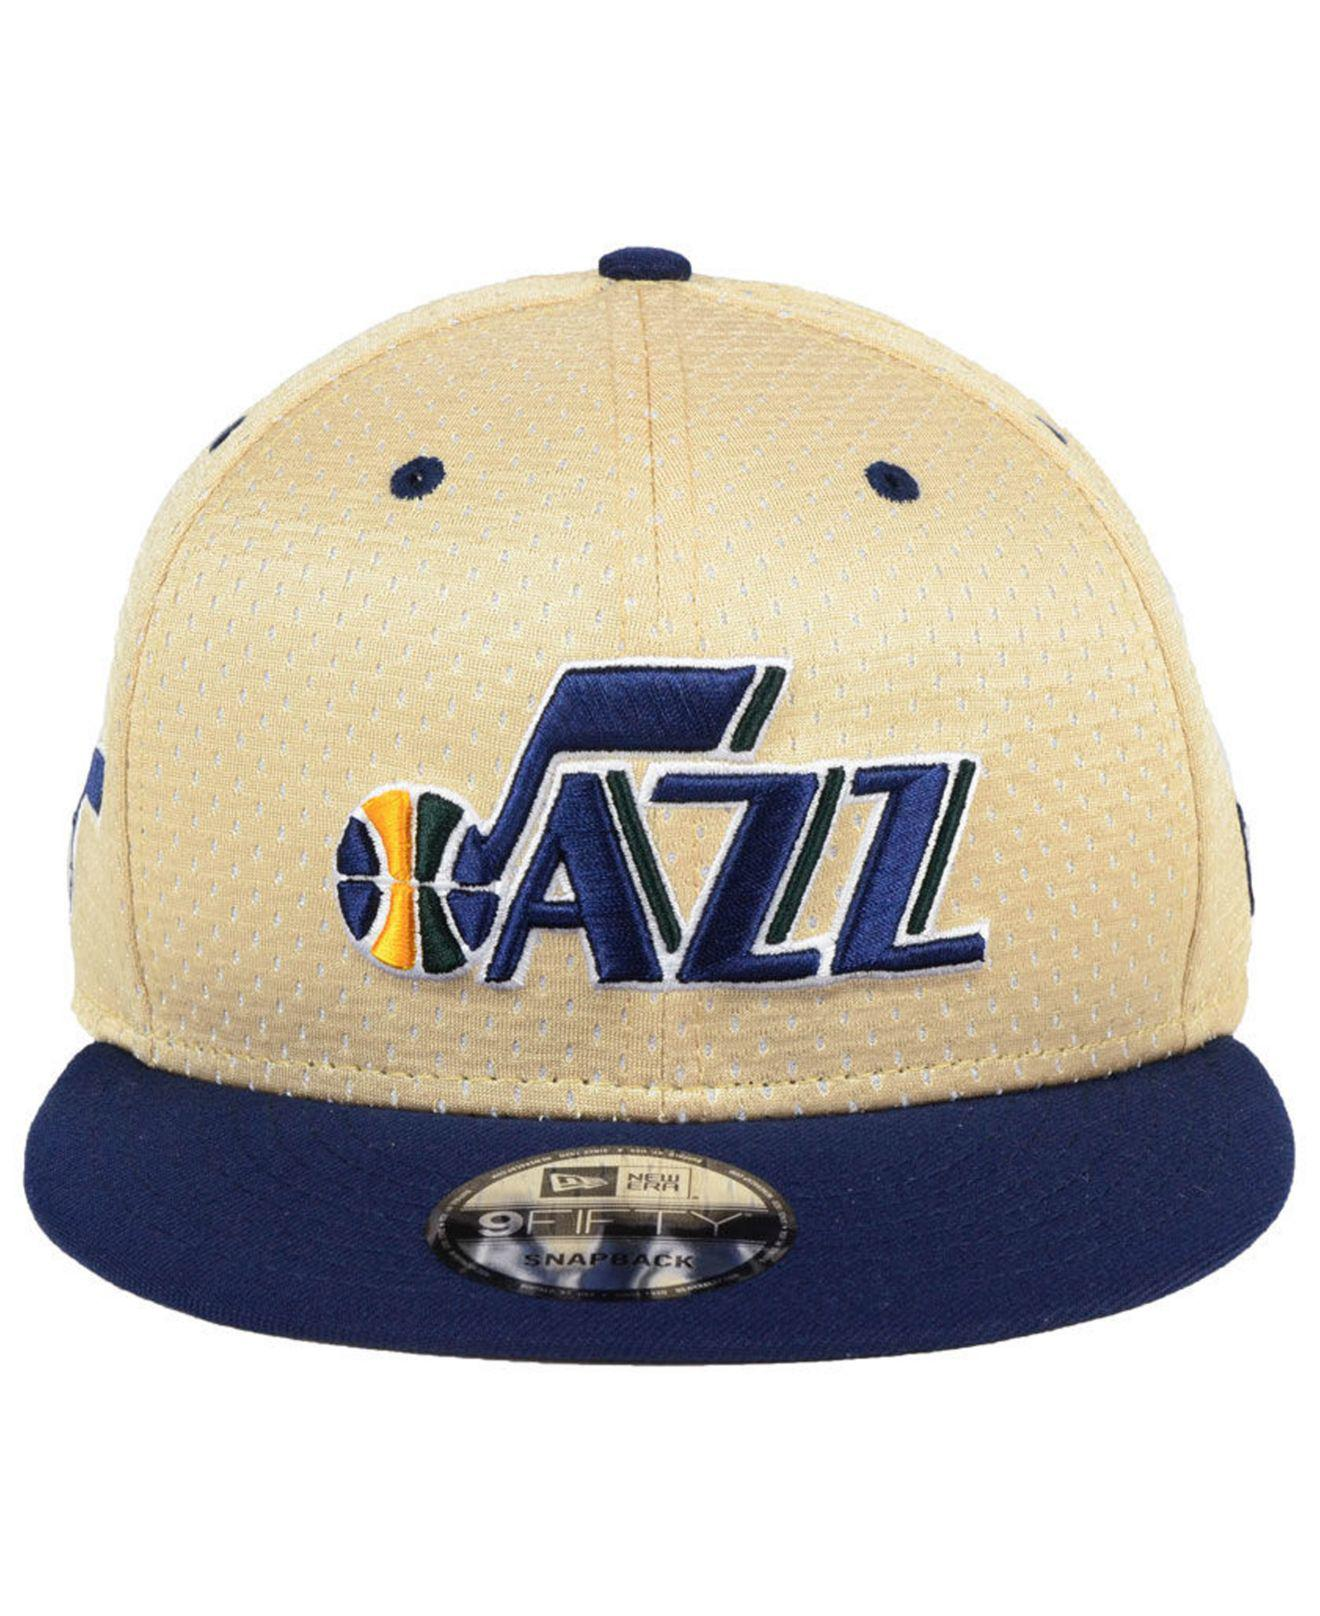 more photos 793b8 70f4c ... denmark lyst ktz utah jazz champagne 9fifty snapback cap in blue for  men 2a917 448ea